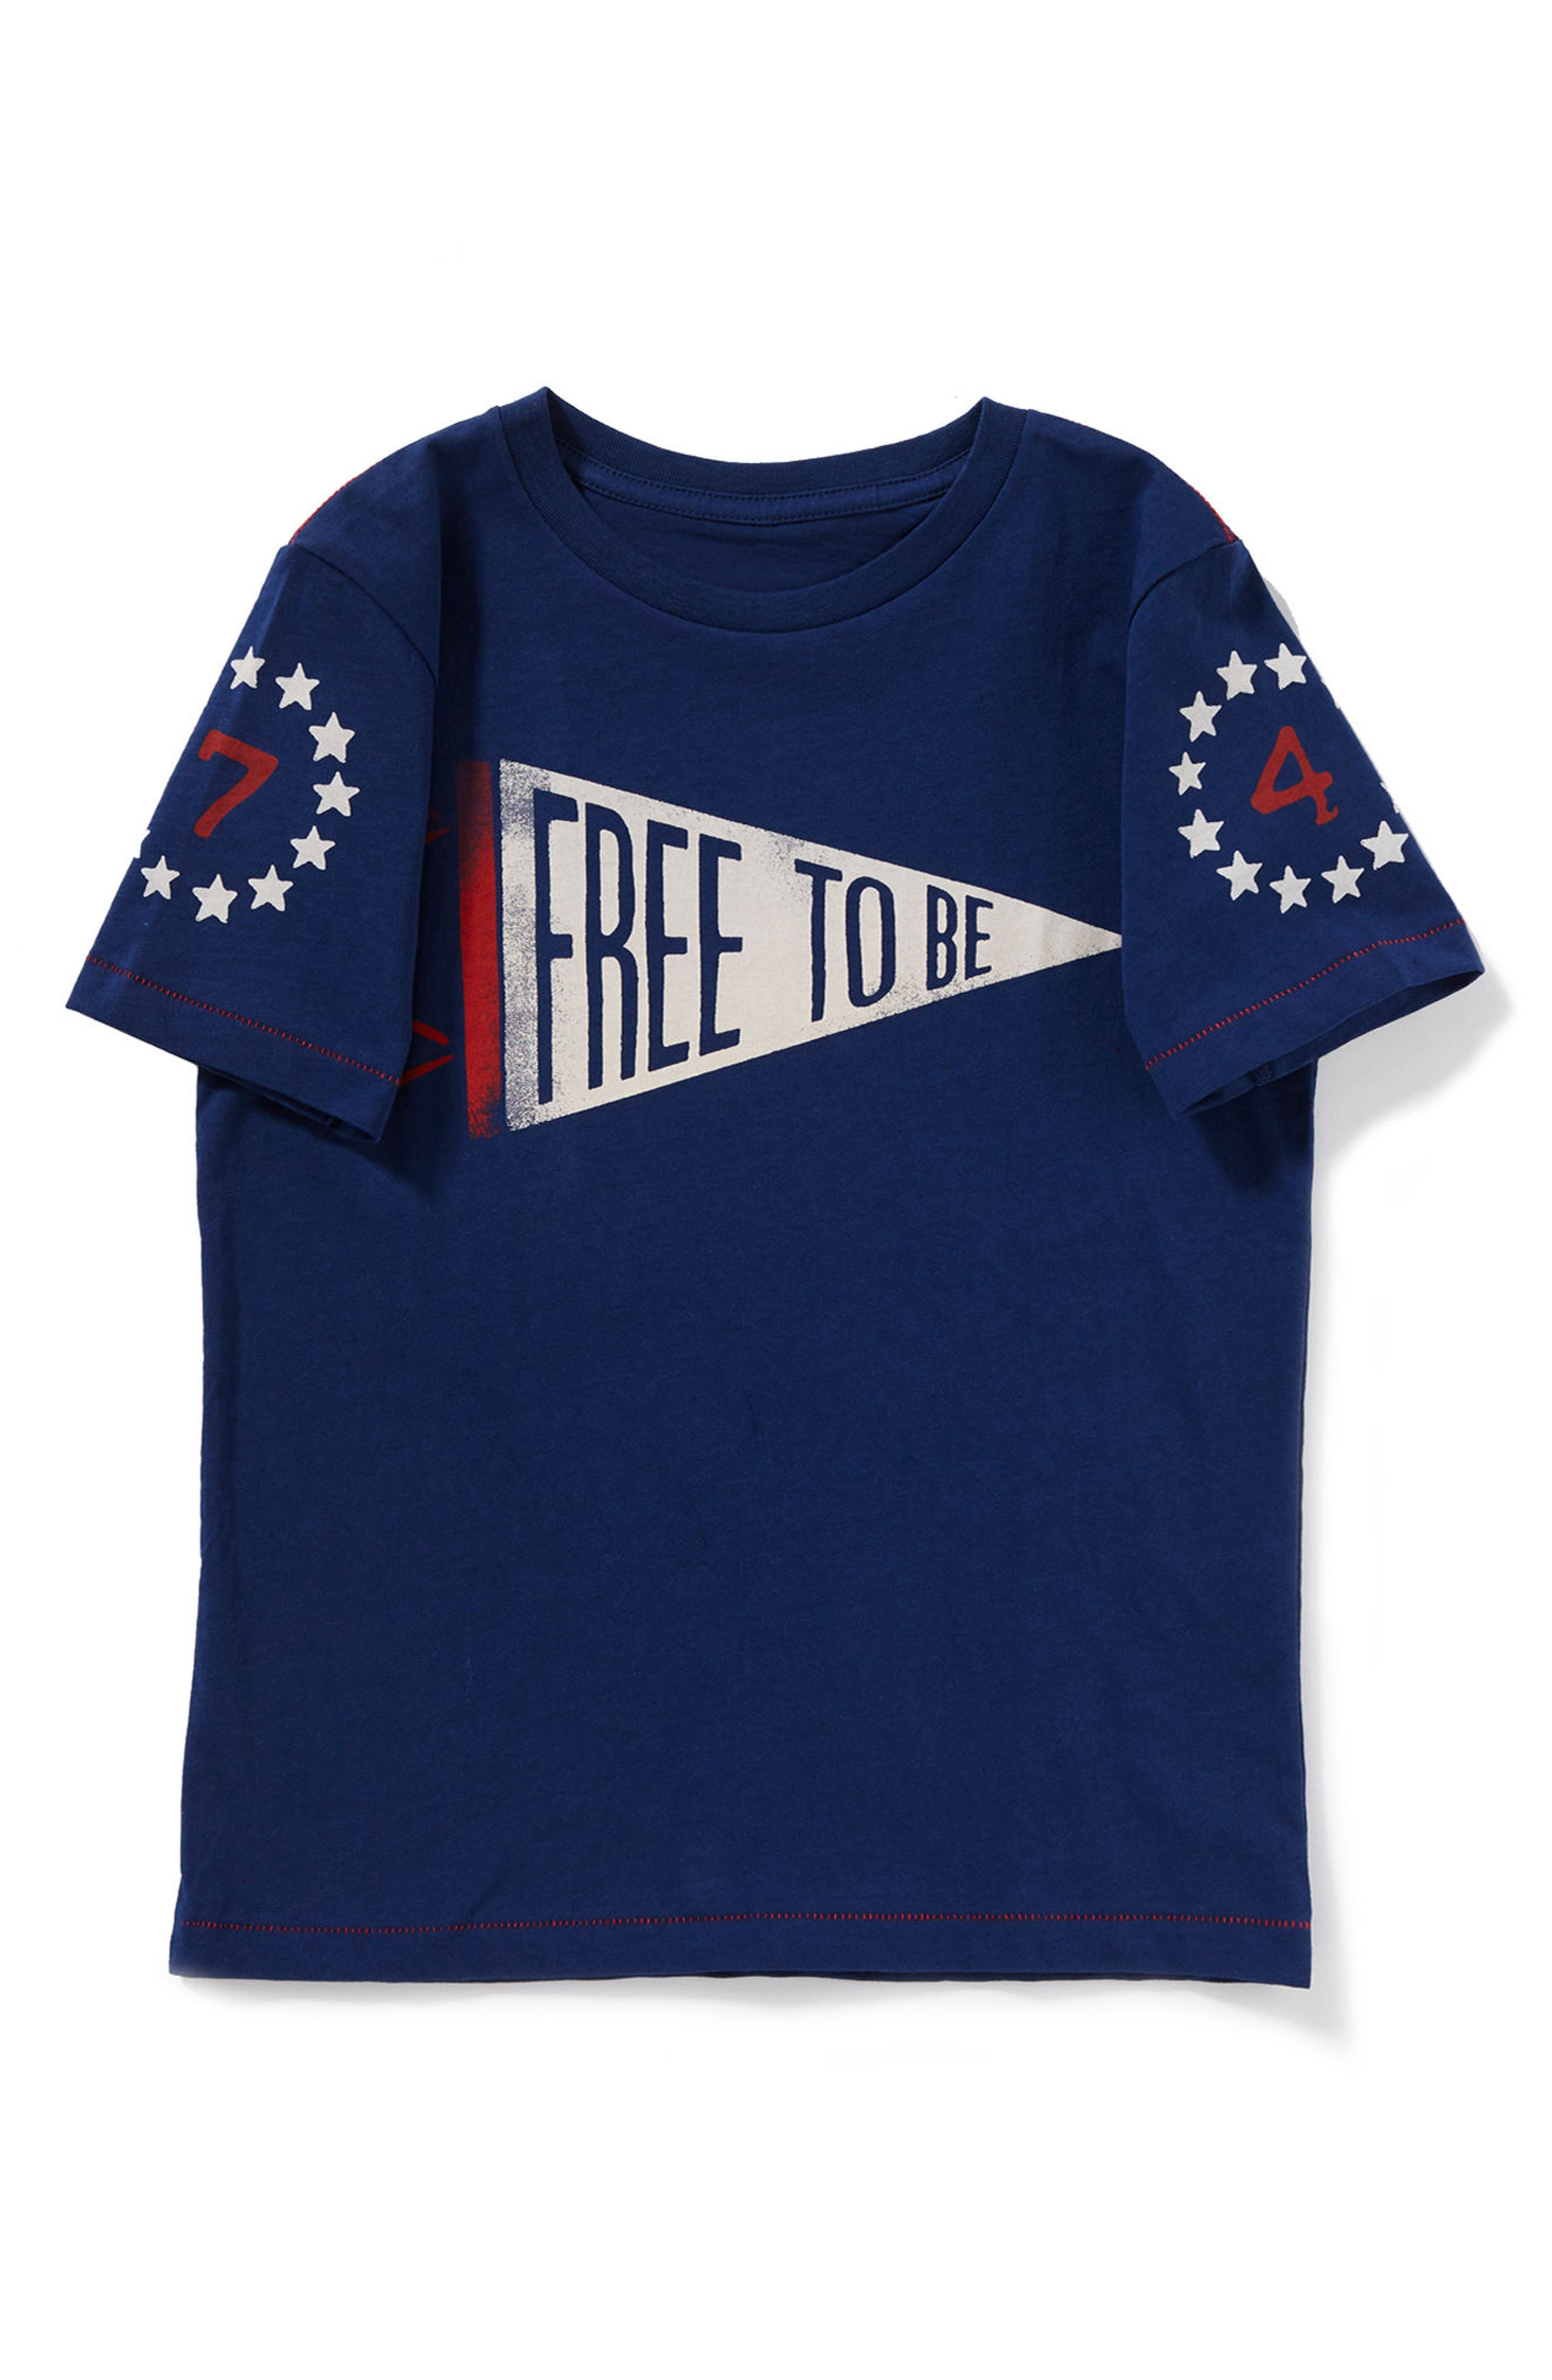 Free to Be Graphic T-Shirt,                             Alternate thumbnail 2, color,                             Navy